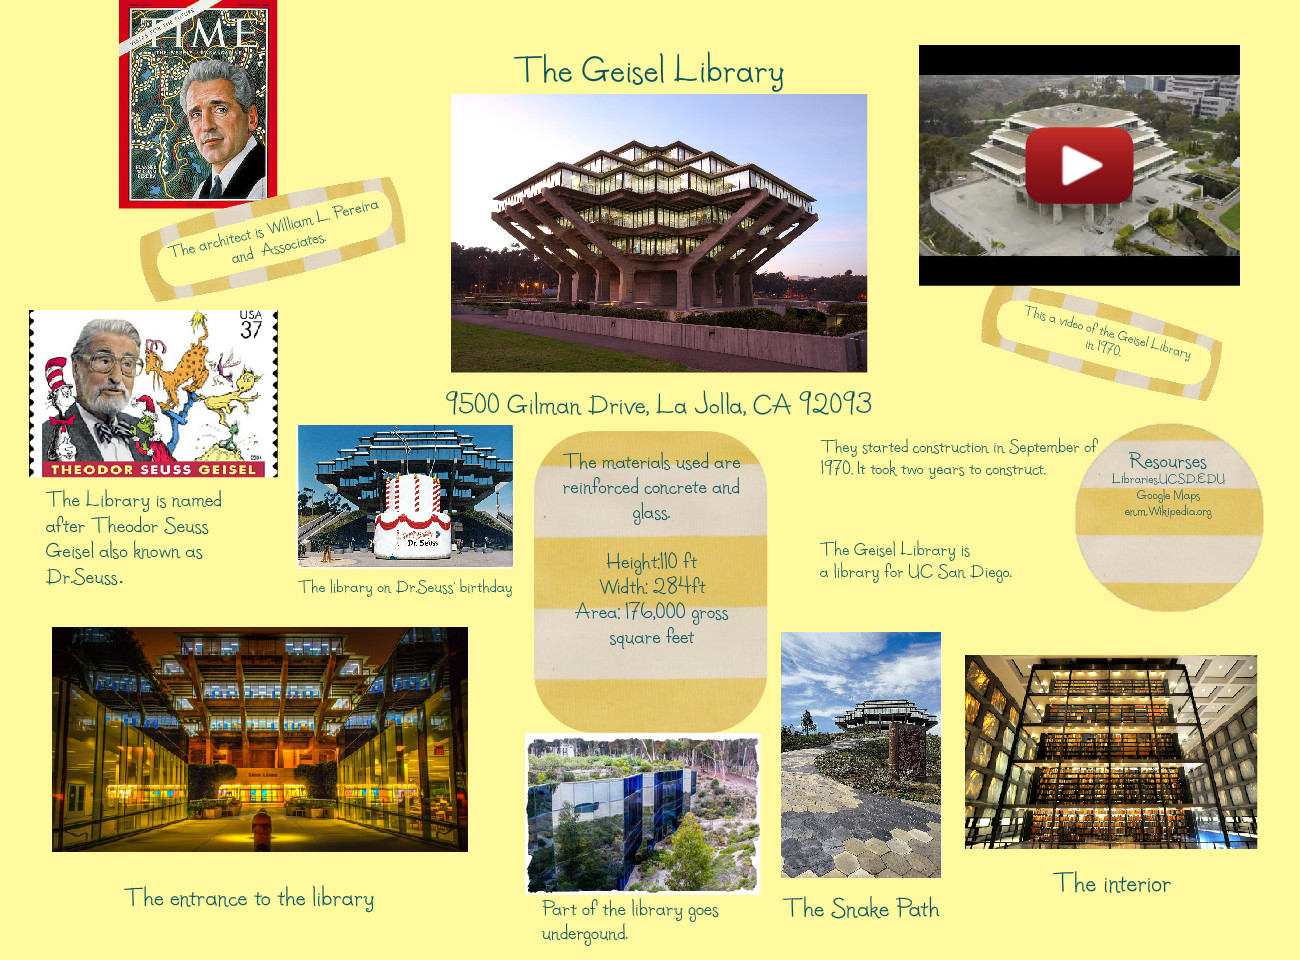 [2015] kelly murray: The Geisel Library